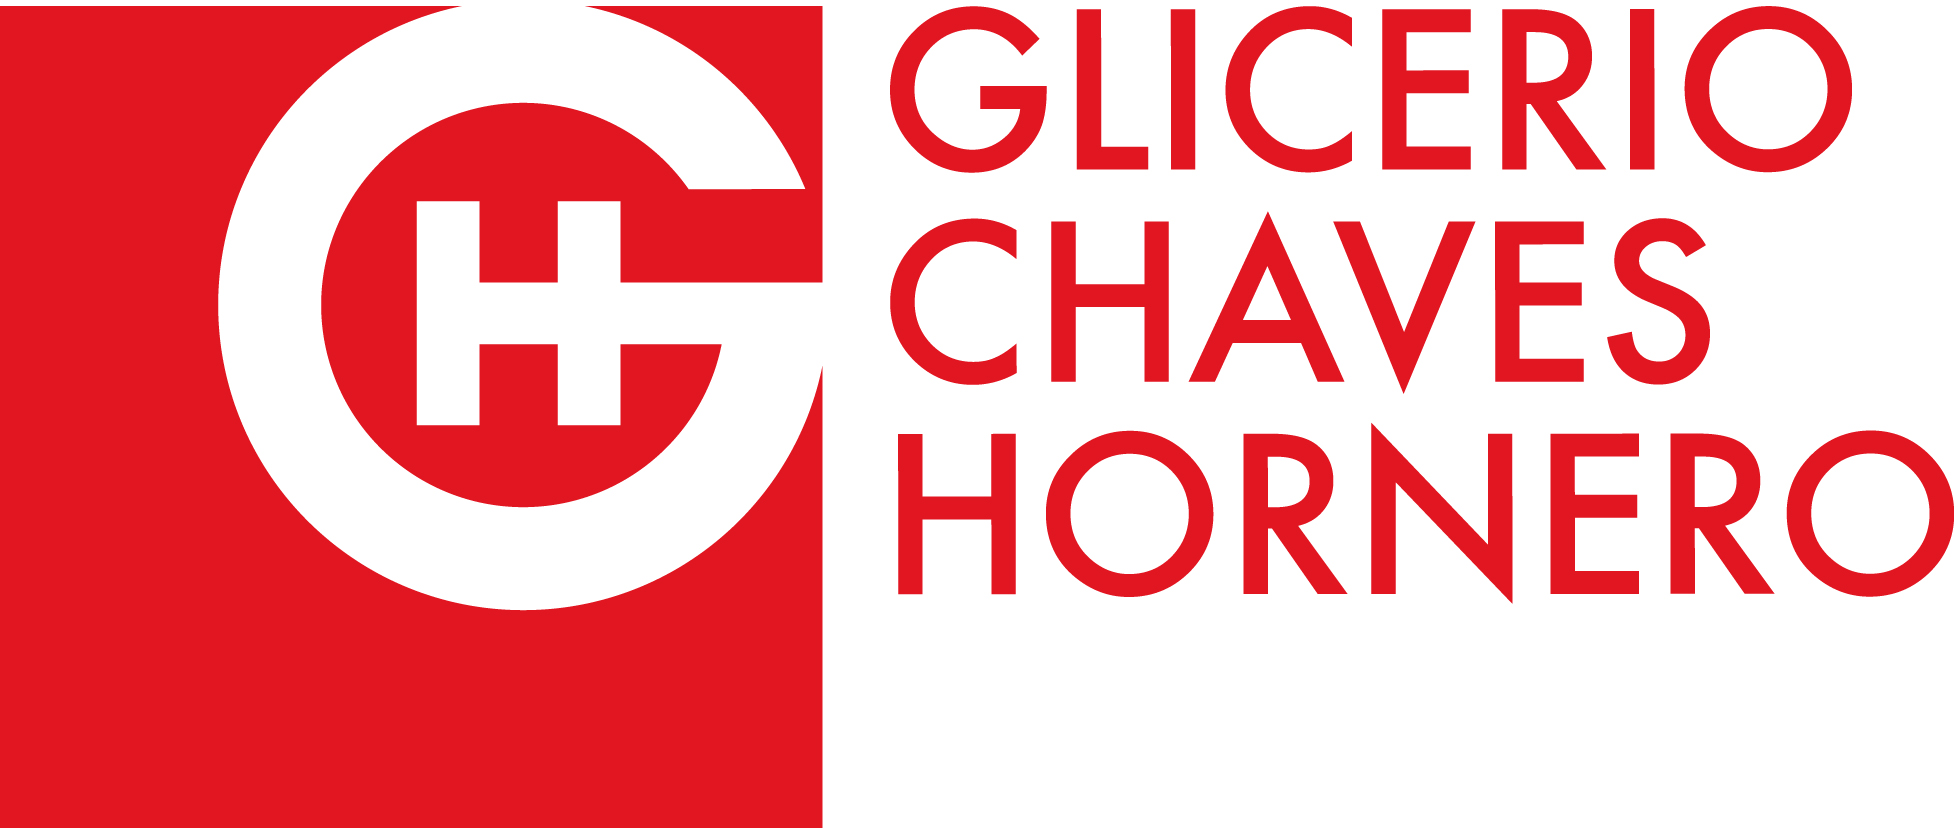 Muebles Clicerio Chaves Hornero